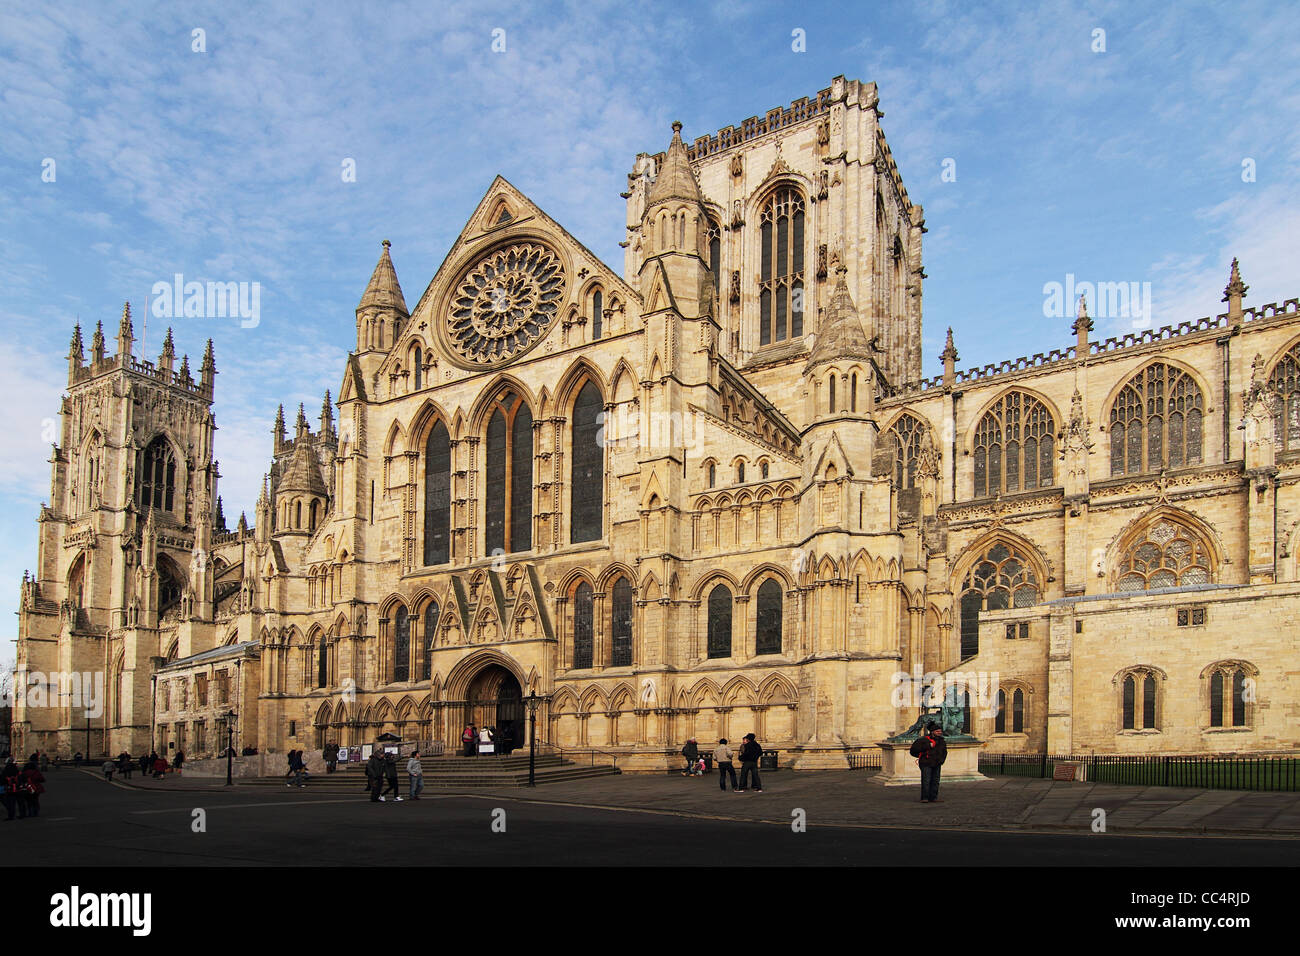 York minster exterior view - Stock Image